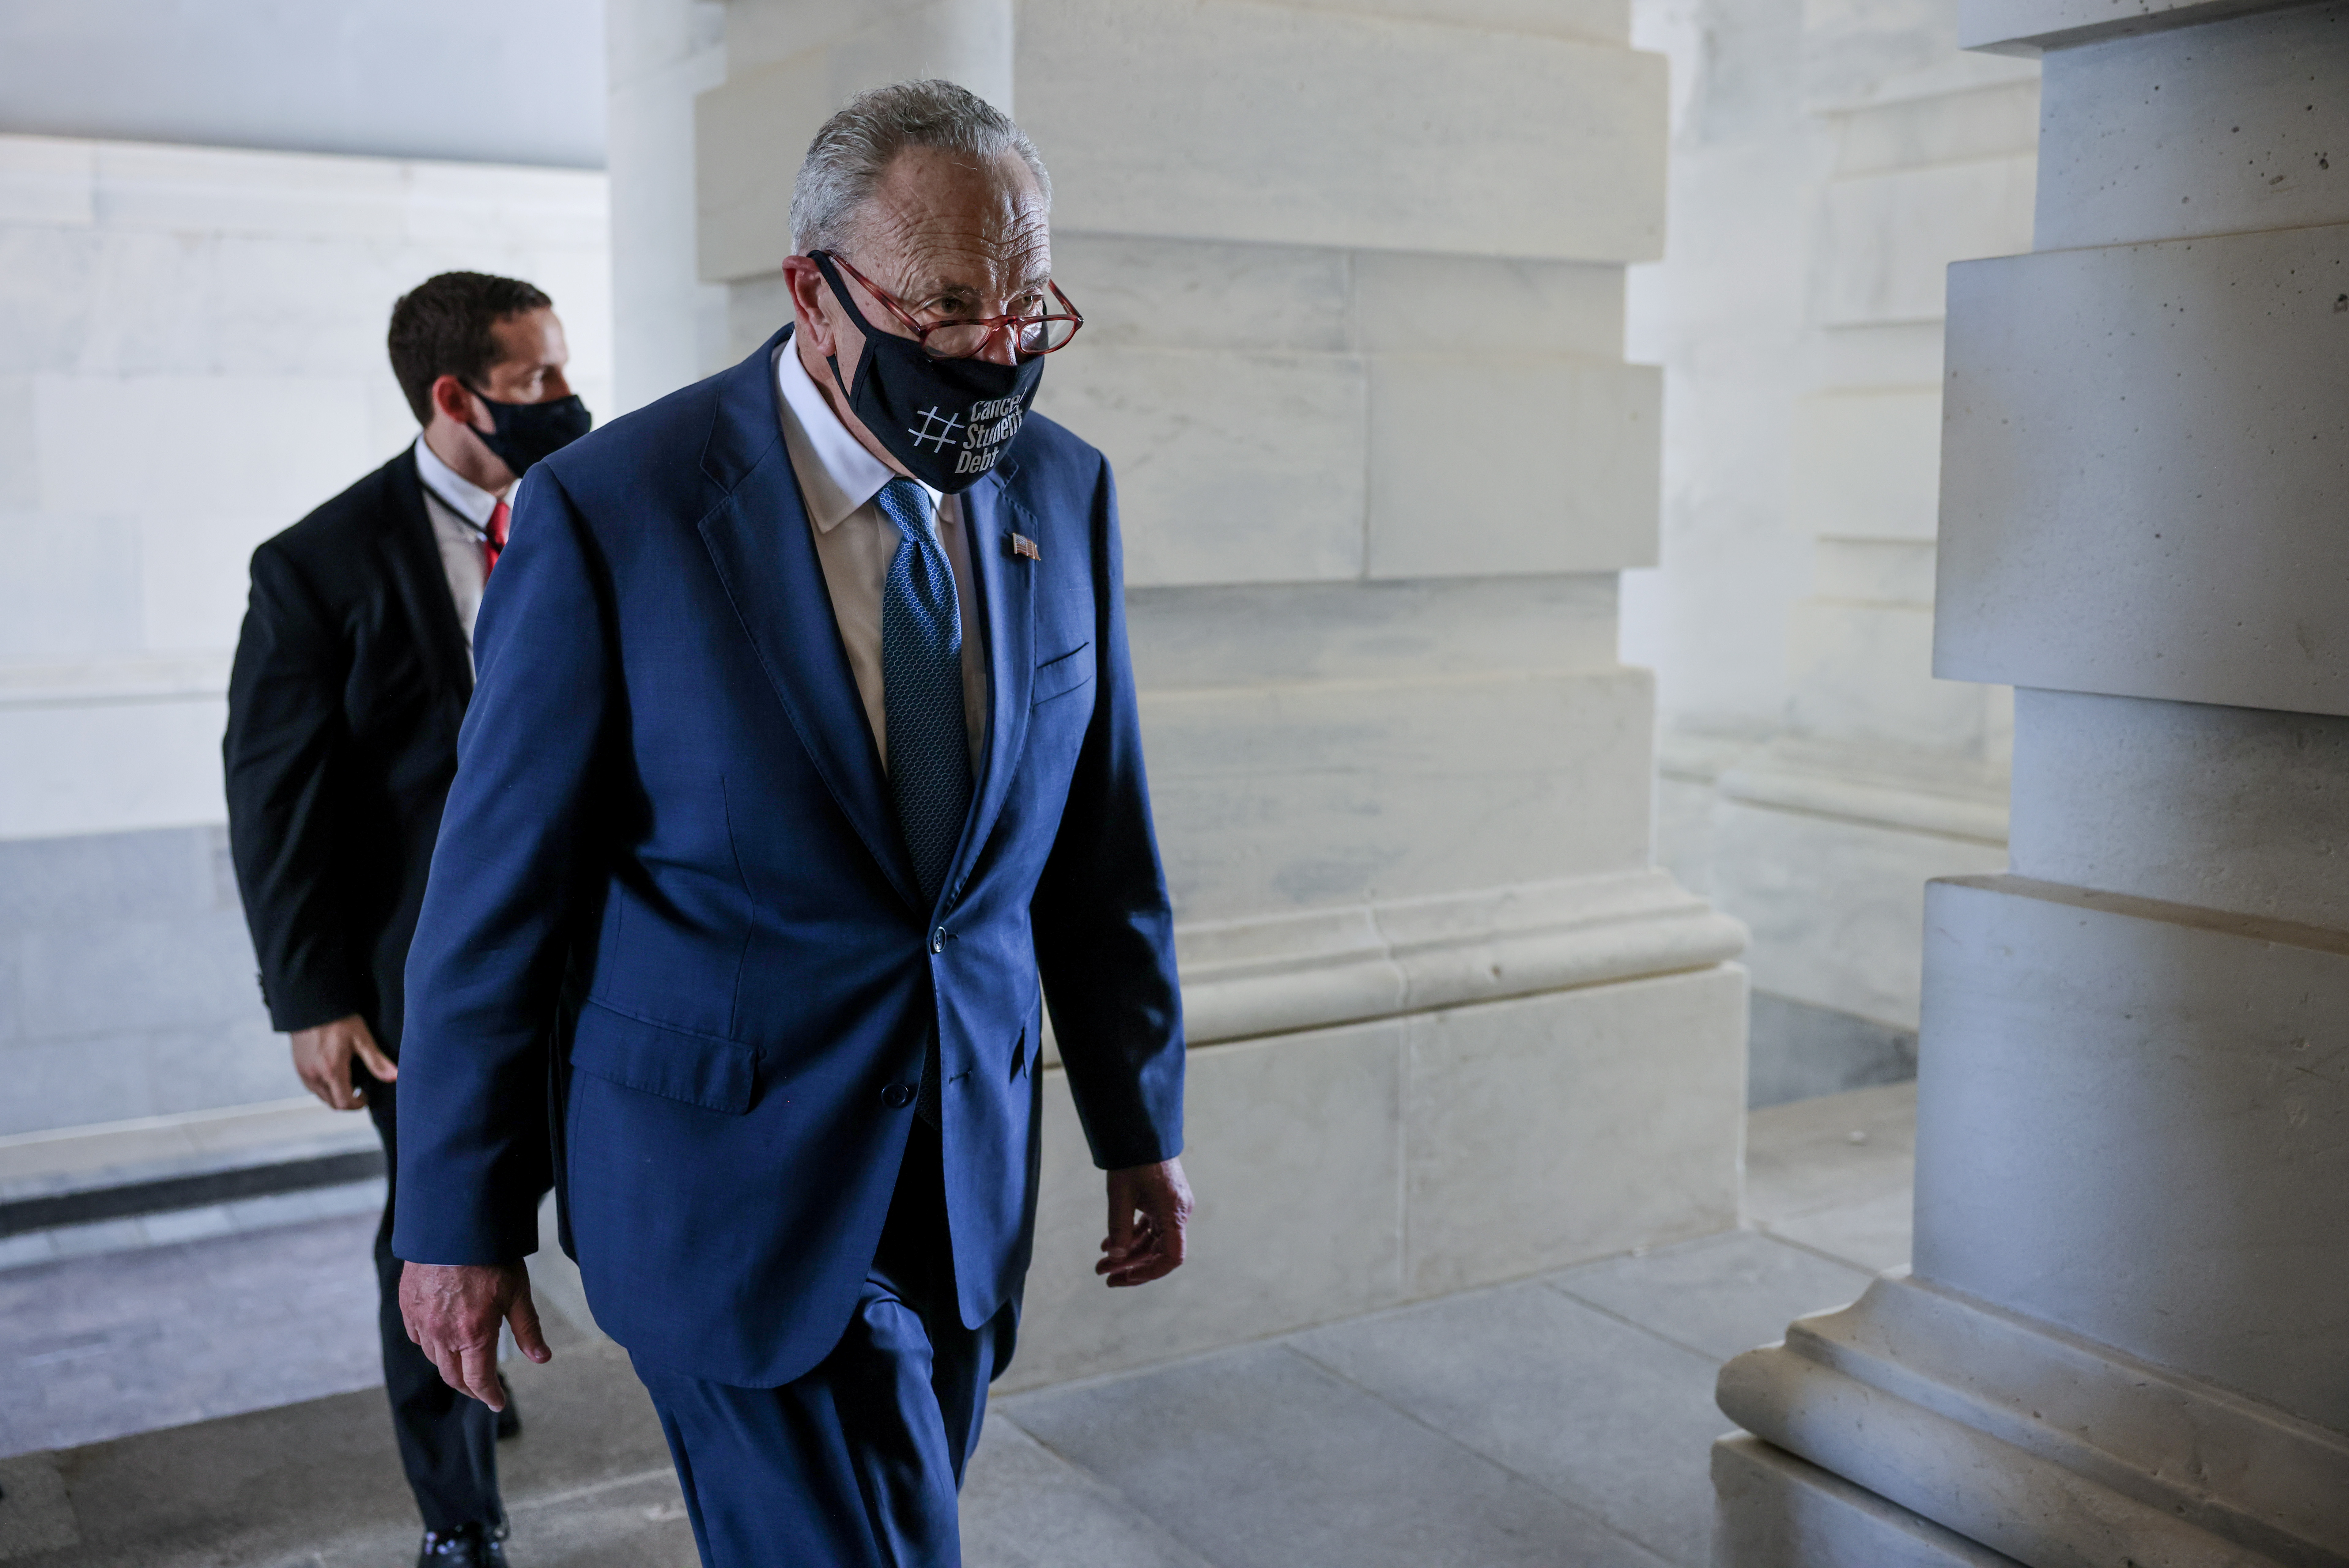 Senate Majority leader Chuck Schumer (D-NY) enters the U.S. Capitol ahead of a day of voting on amendments to the bipartisan infrastructure deal at the U.S. Capitol in Washington, U.S., August 5, 2021. REUTERS/Evelyn Hockstein